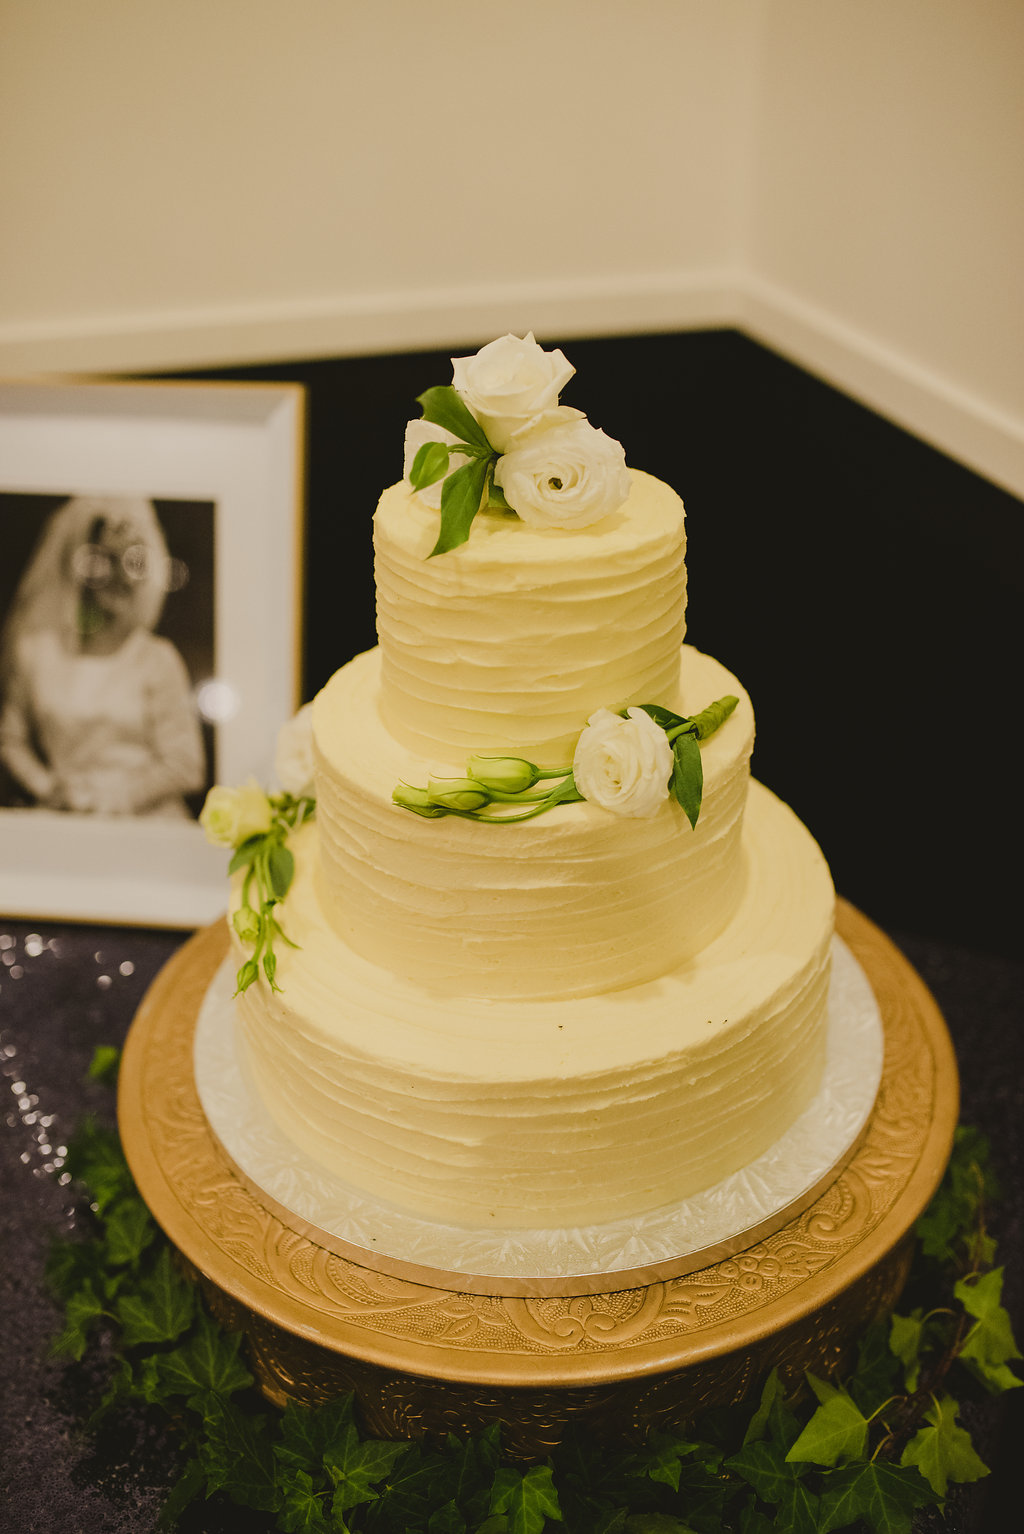 Cake Plateau - Matte Gold | The Pretty Prop Shop Wedding and Event Hire